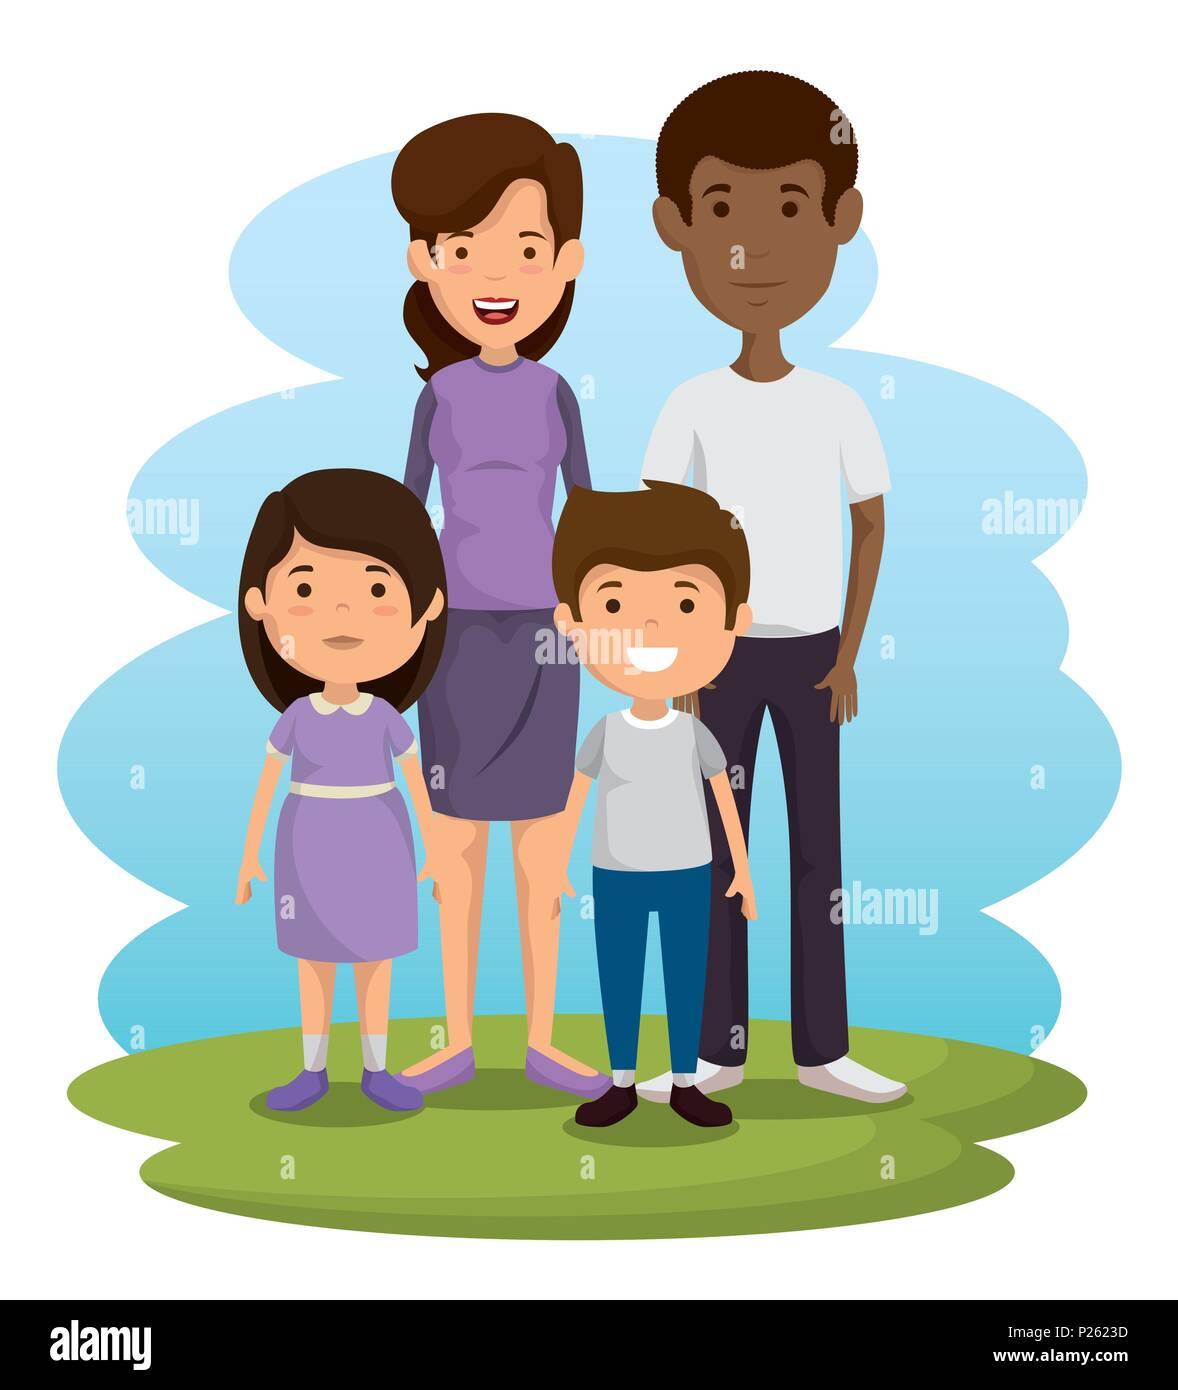 parents with kids avatars characters - Stock Image